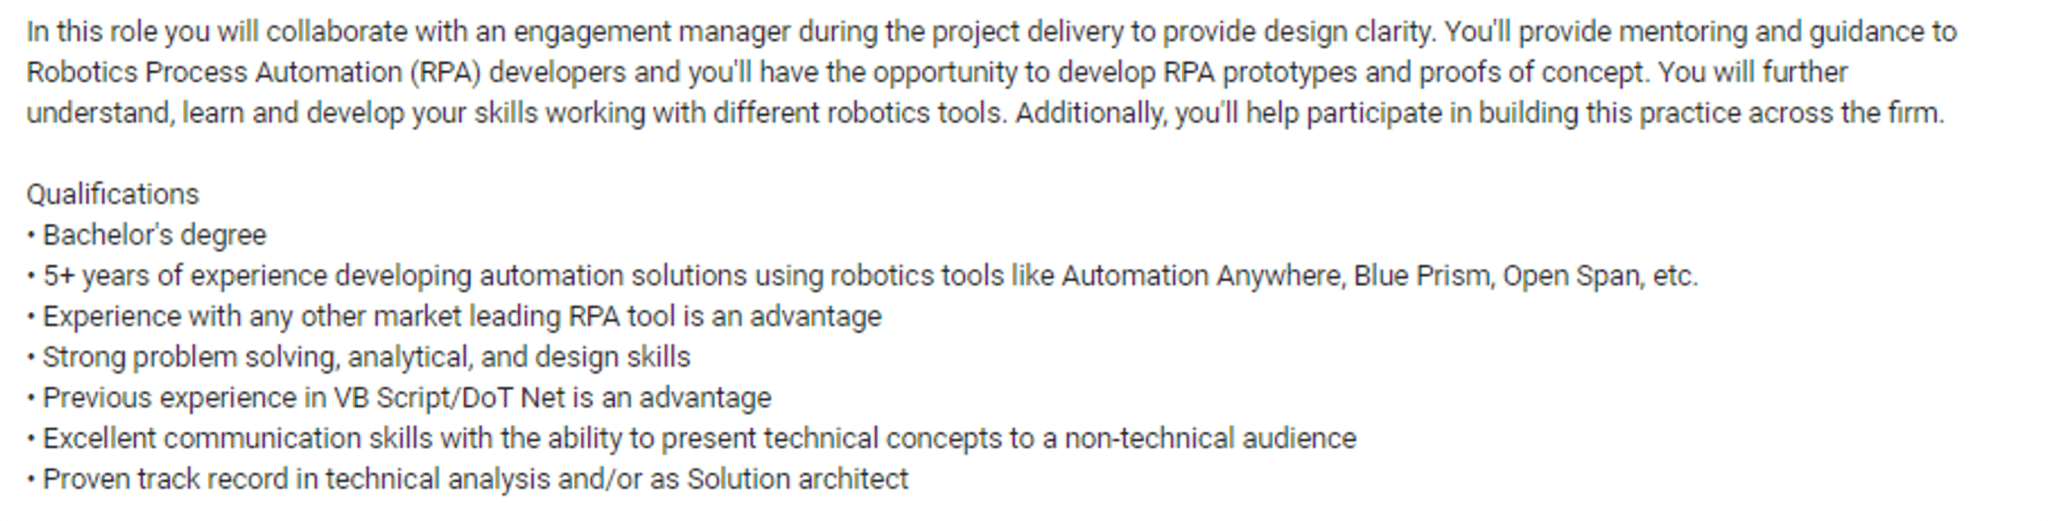 Automation Architect Job Description - RPA Developer Roles and Responsibilities - Eudreka